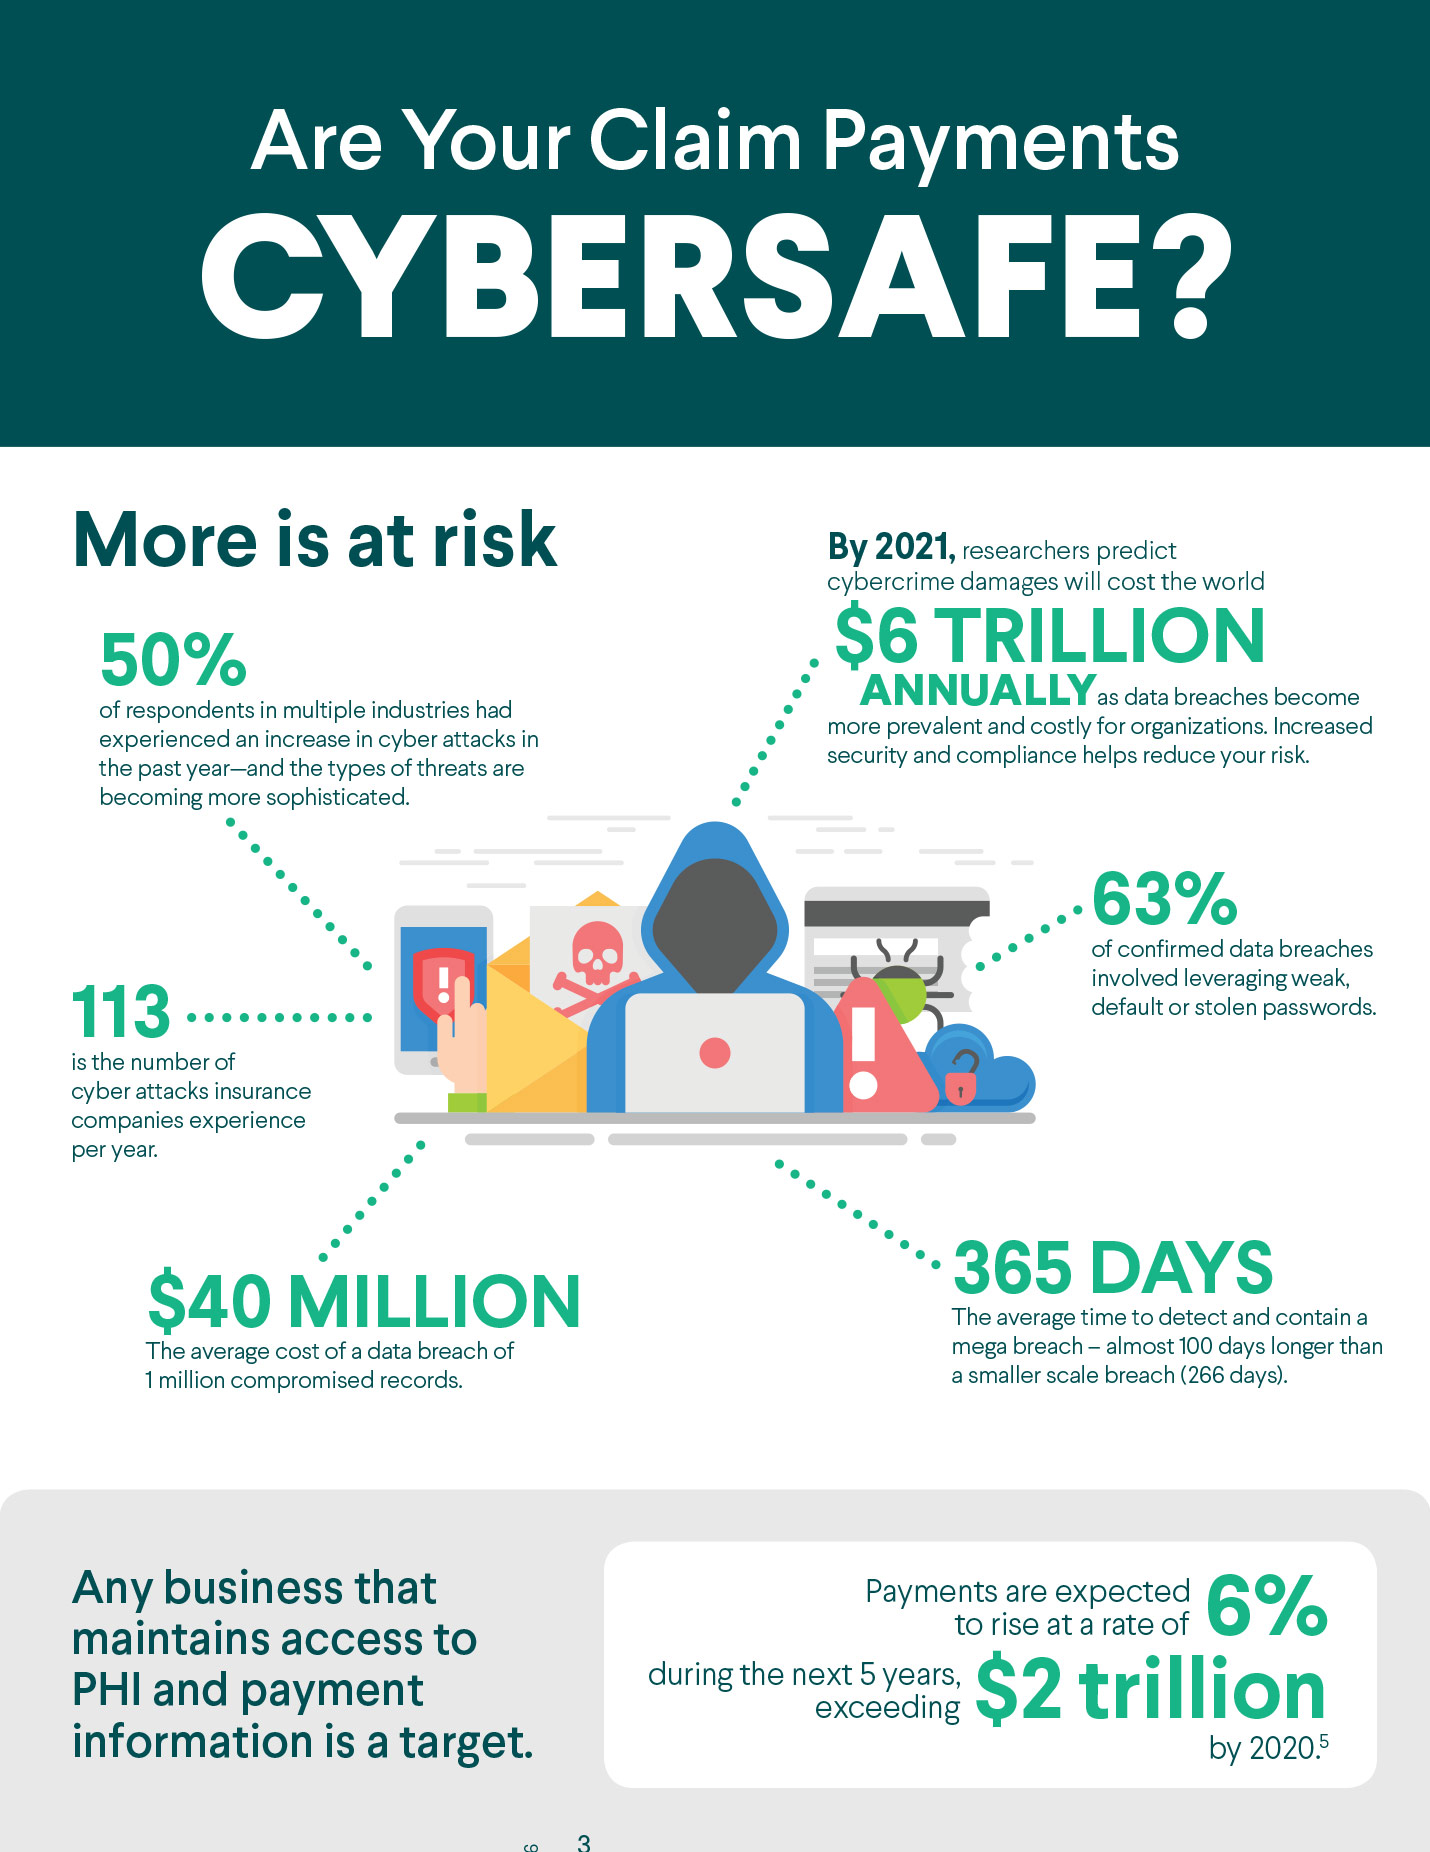 Making the Claim for Cyber Security